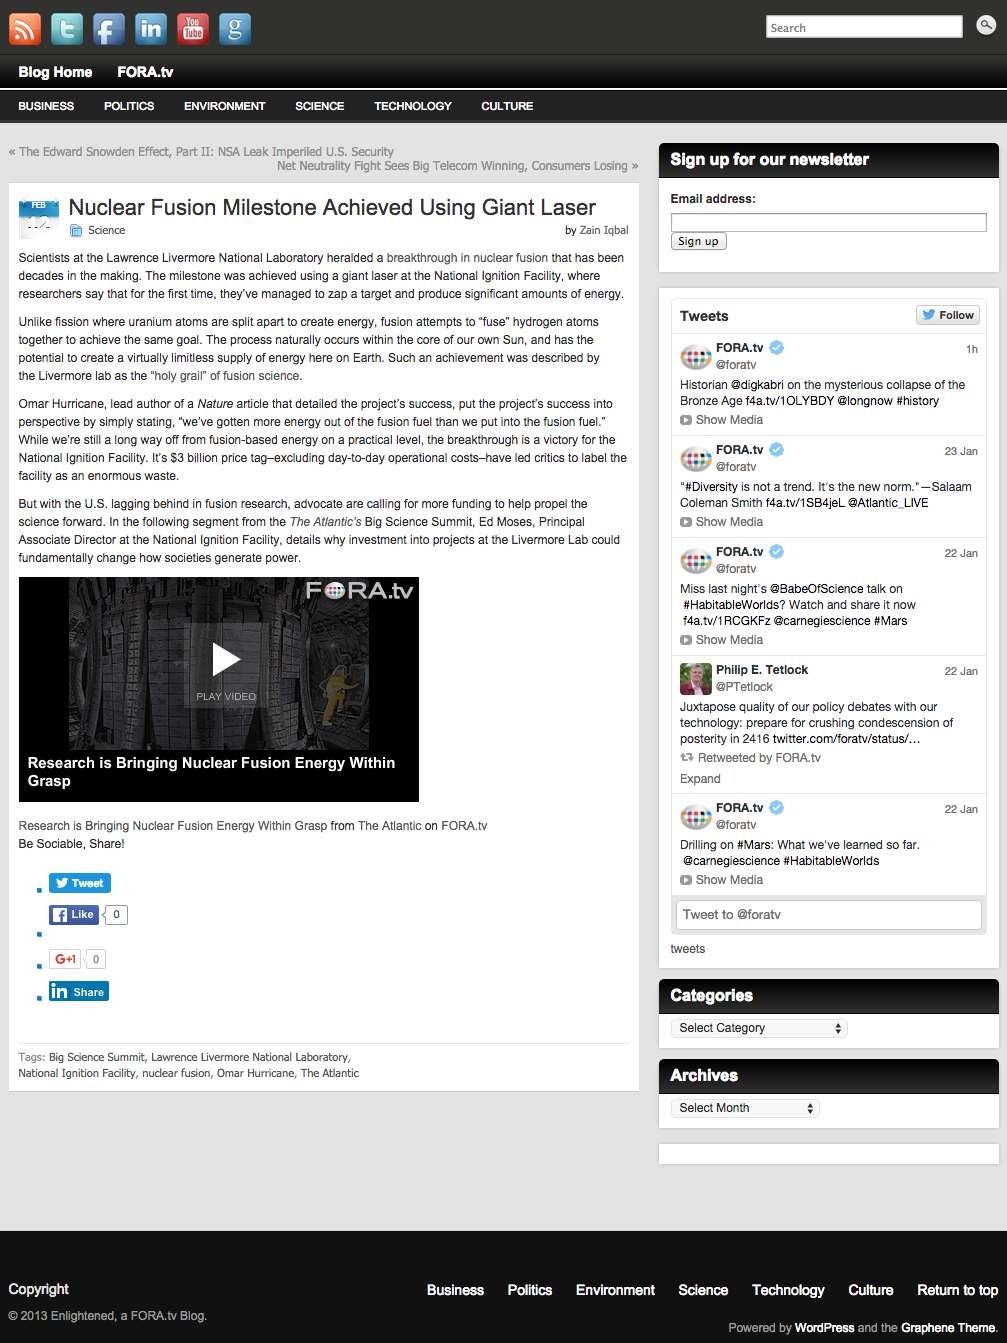 screencapture-enarchive-fora-tv-2014-02-nuclear-fusion-milestone-giant-laser.png